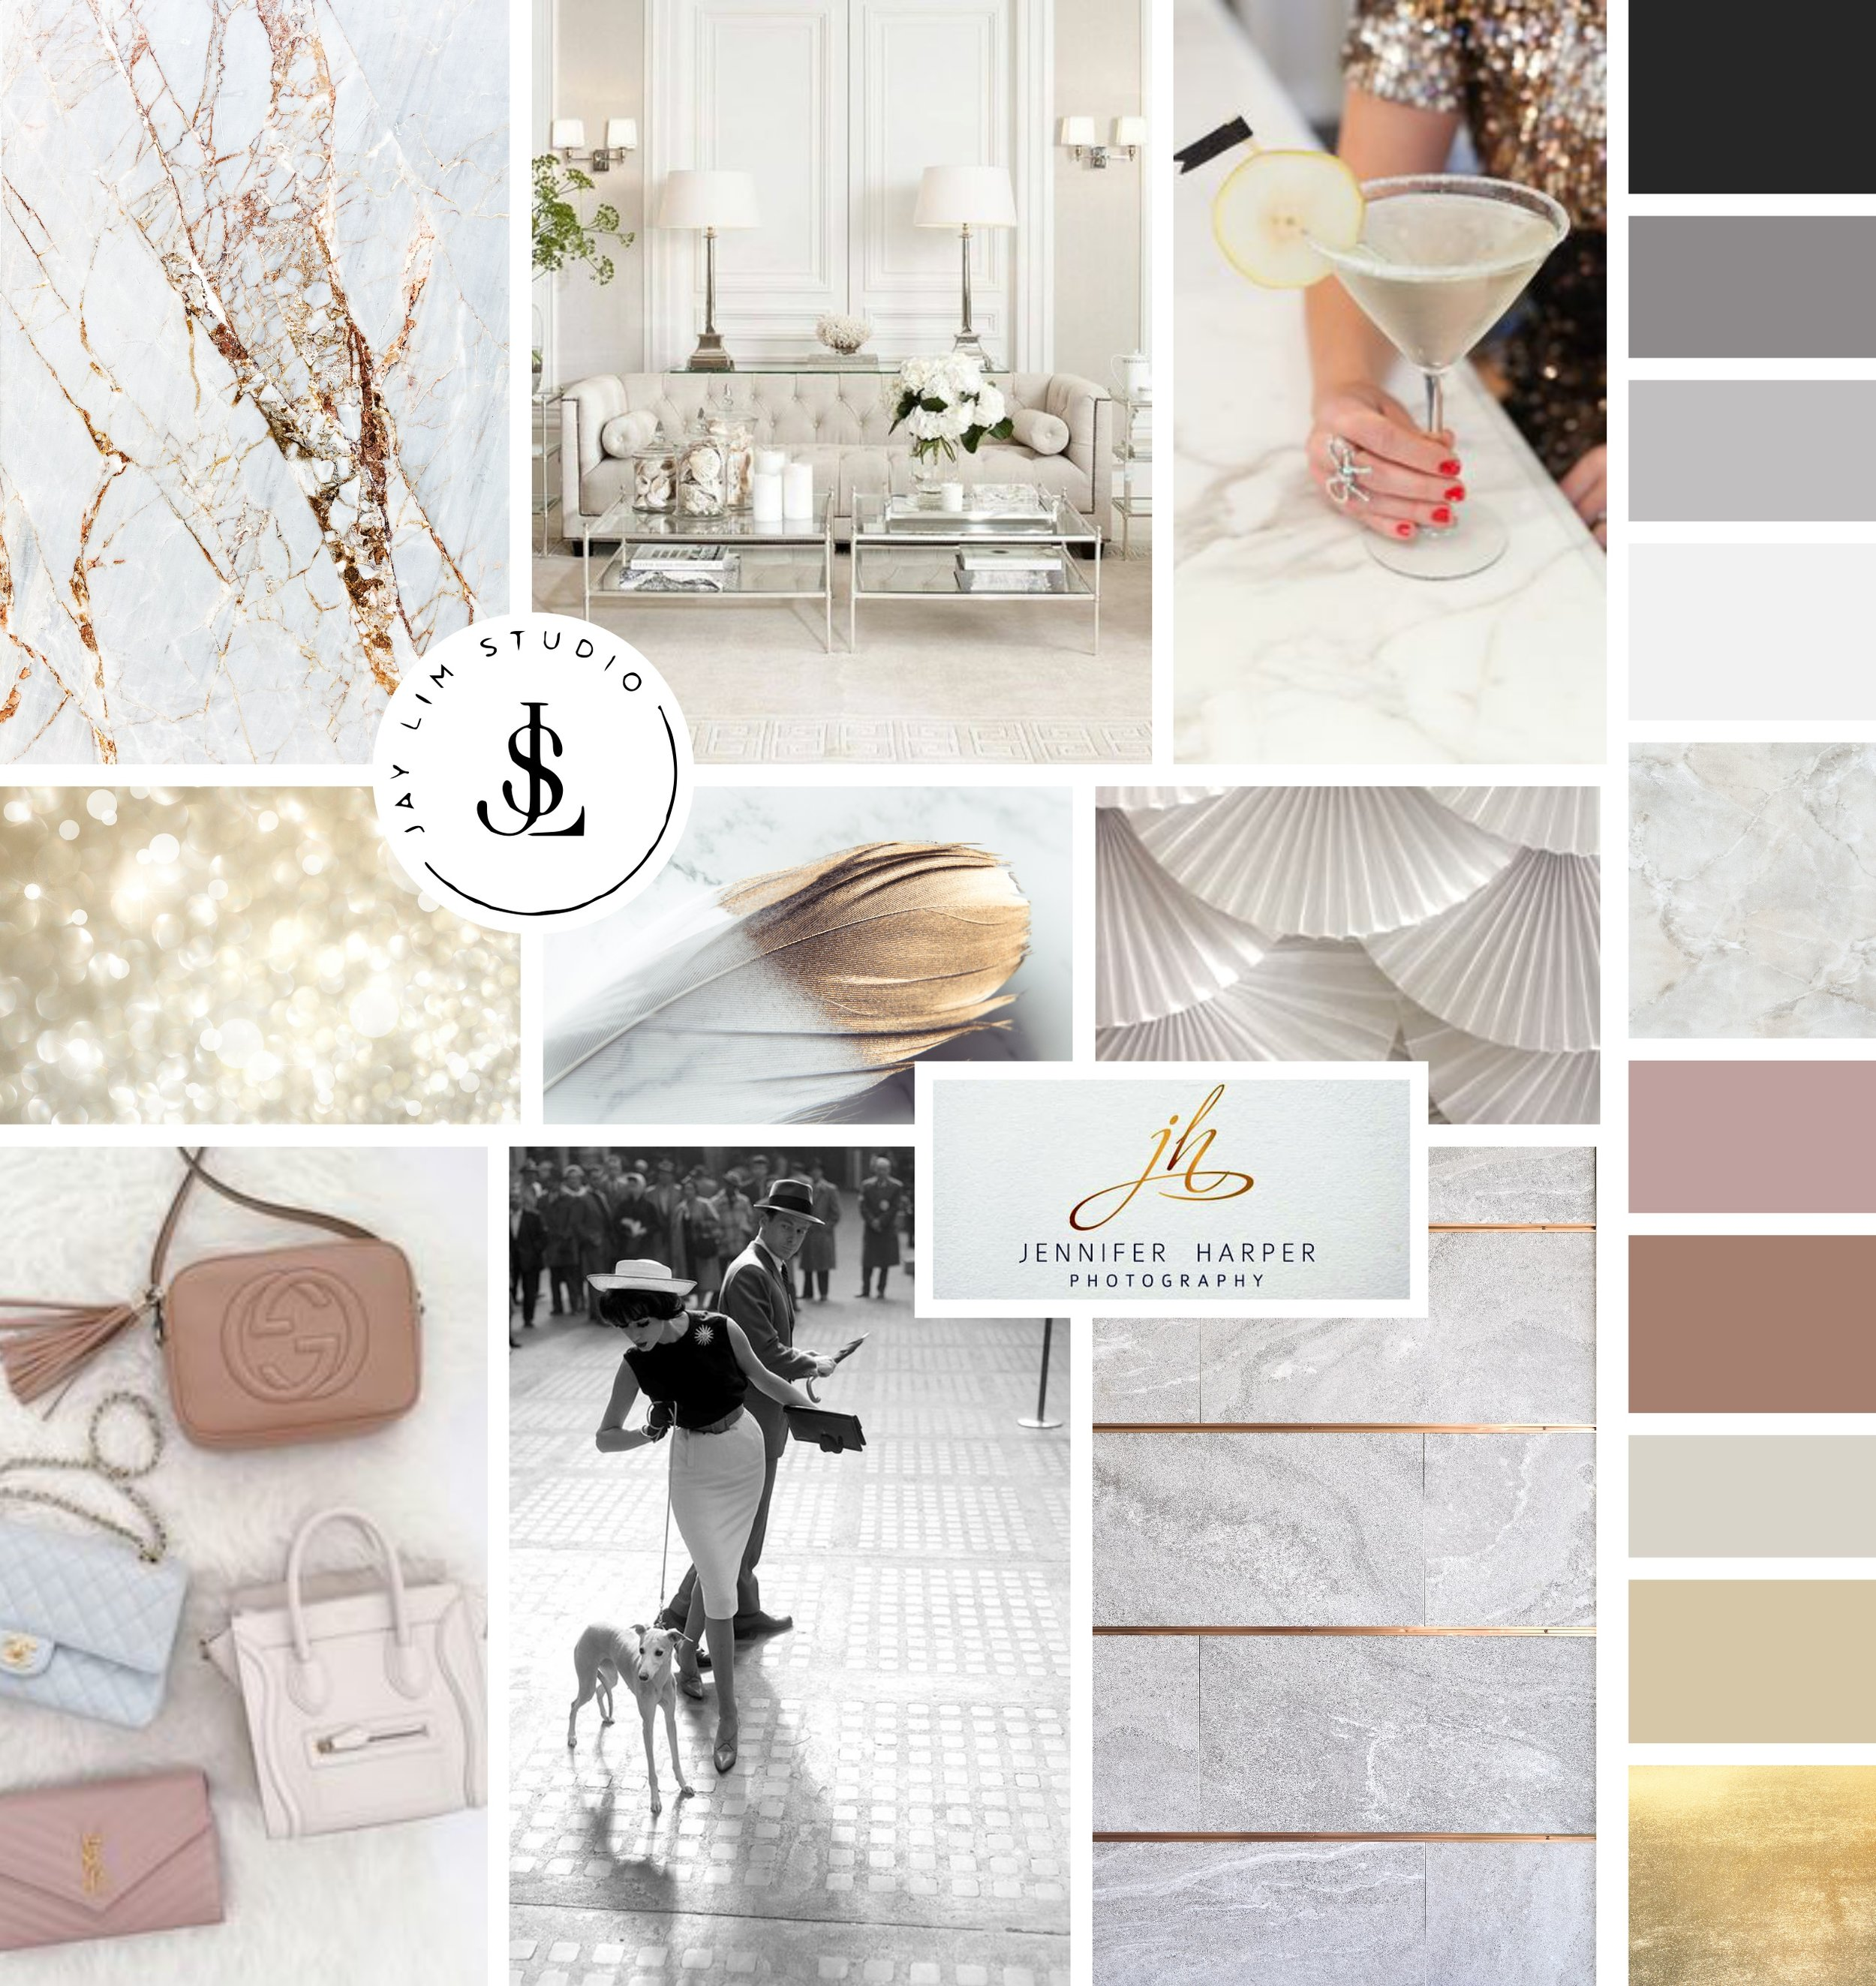 Perfectly Planned Fera Events Brand Inspiration Board by Tarragon Studios